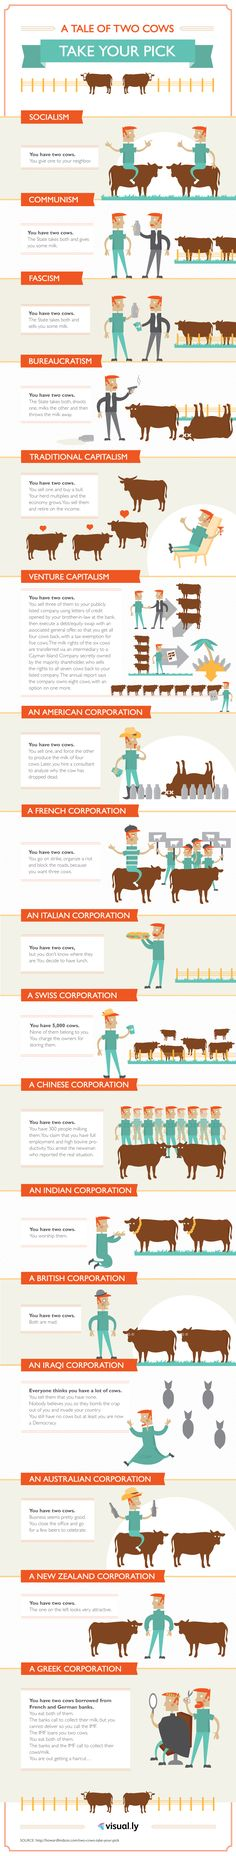 Visual Storytelling: A Tale of Two Cows | Visual.ly Blog